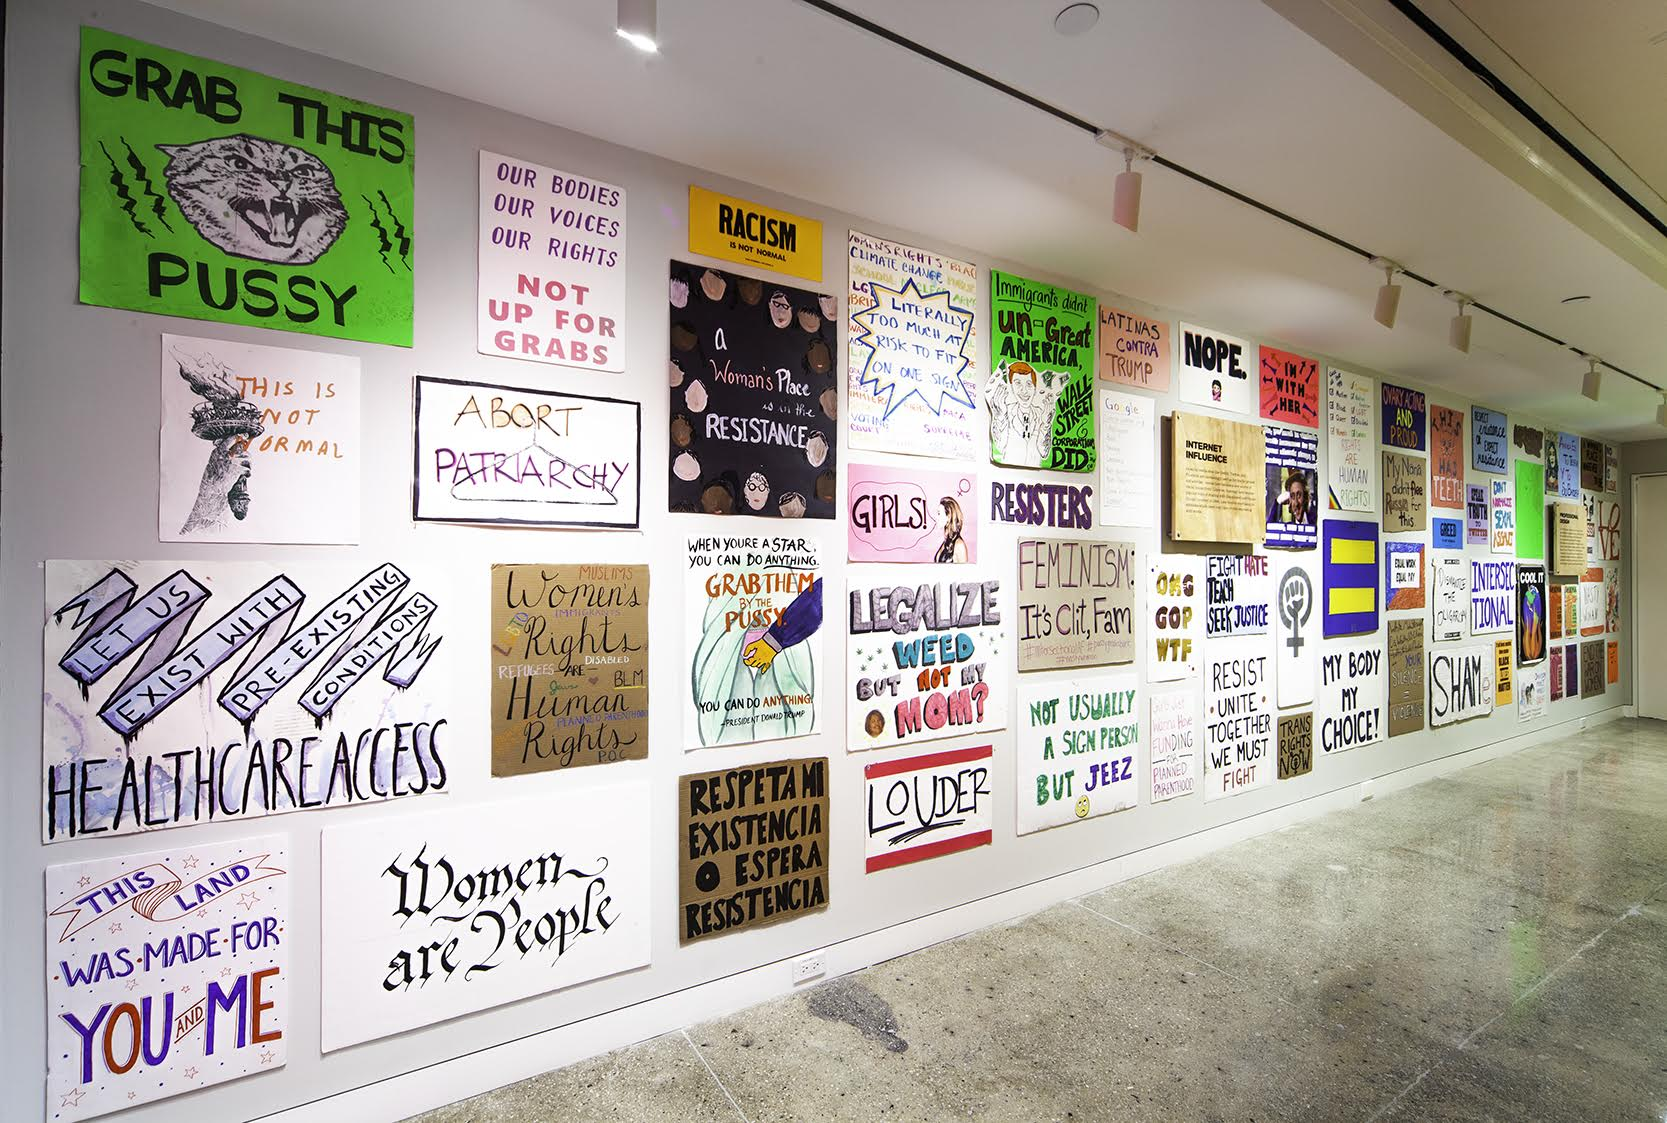 photograph of a poster wall from the Women's March exhibition